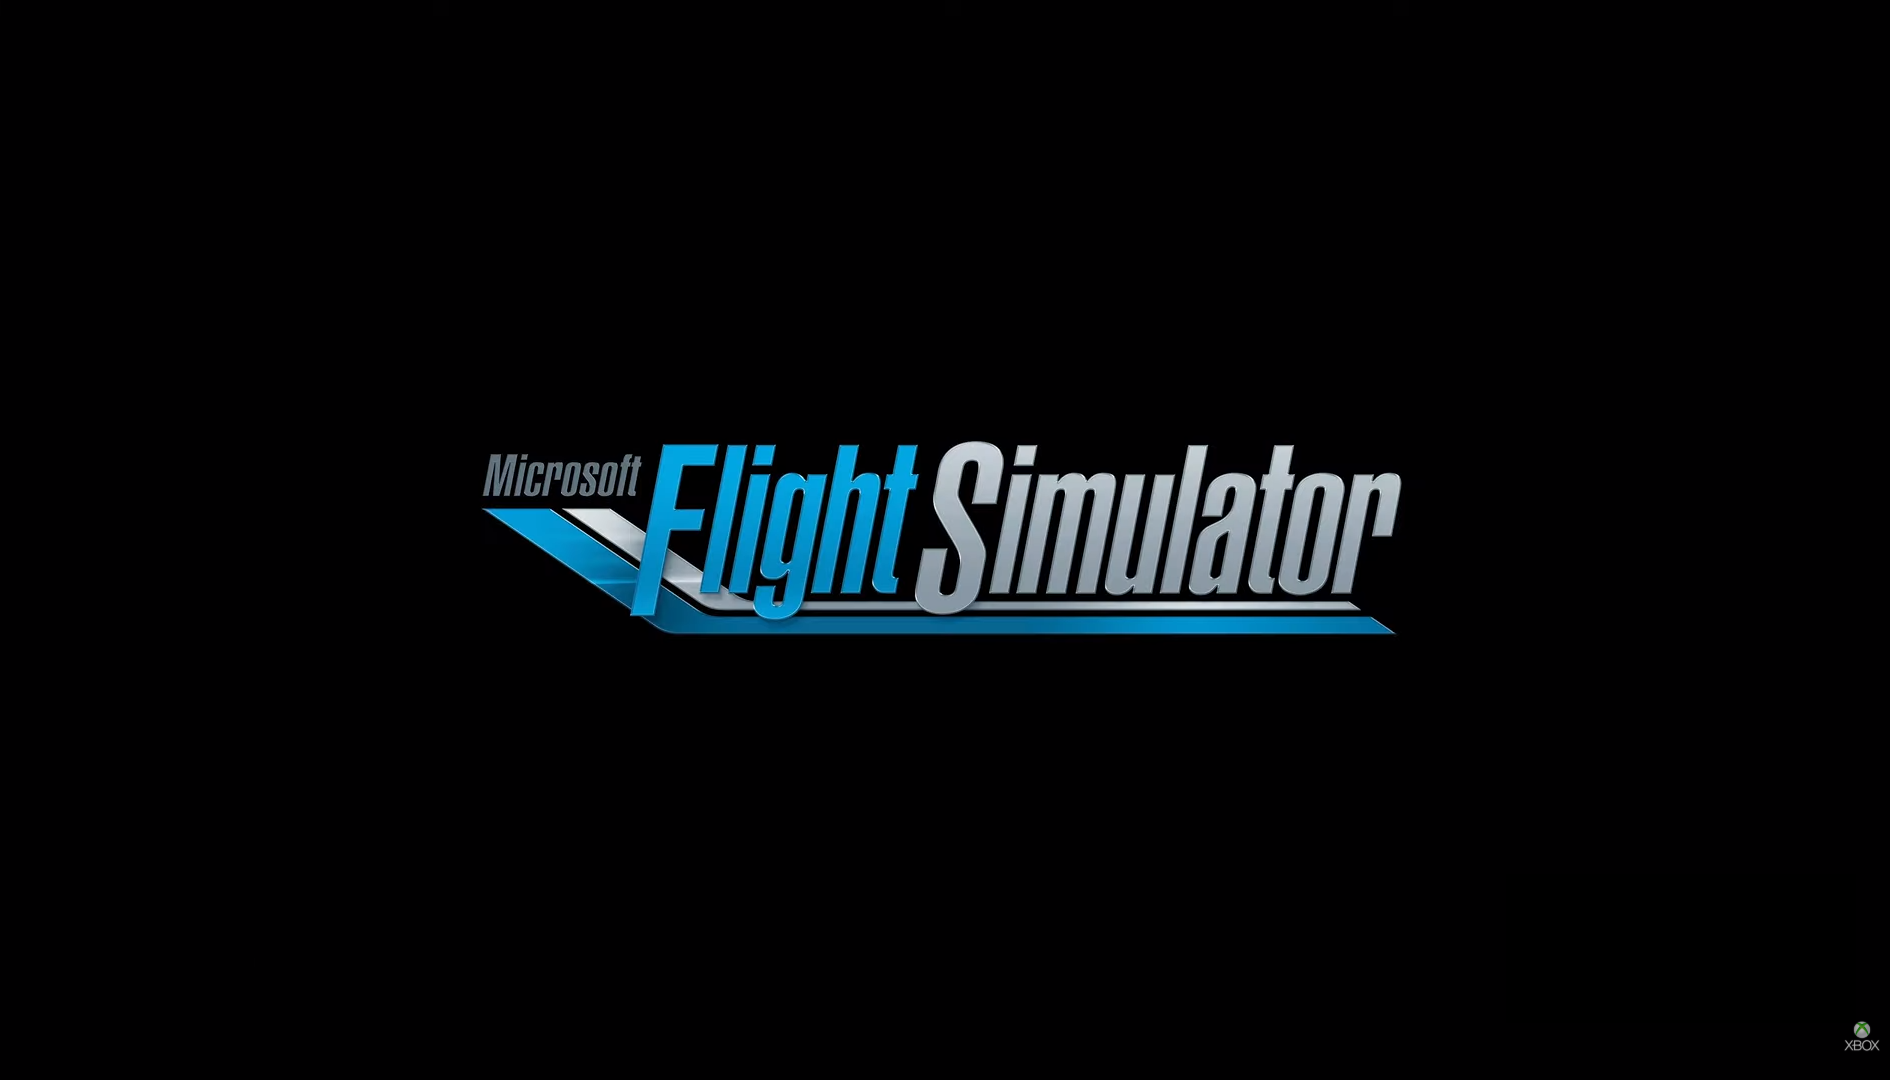 Microsoft Flight Simulator e il buco del Brasile: in video lo strano glitch